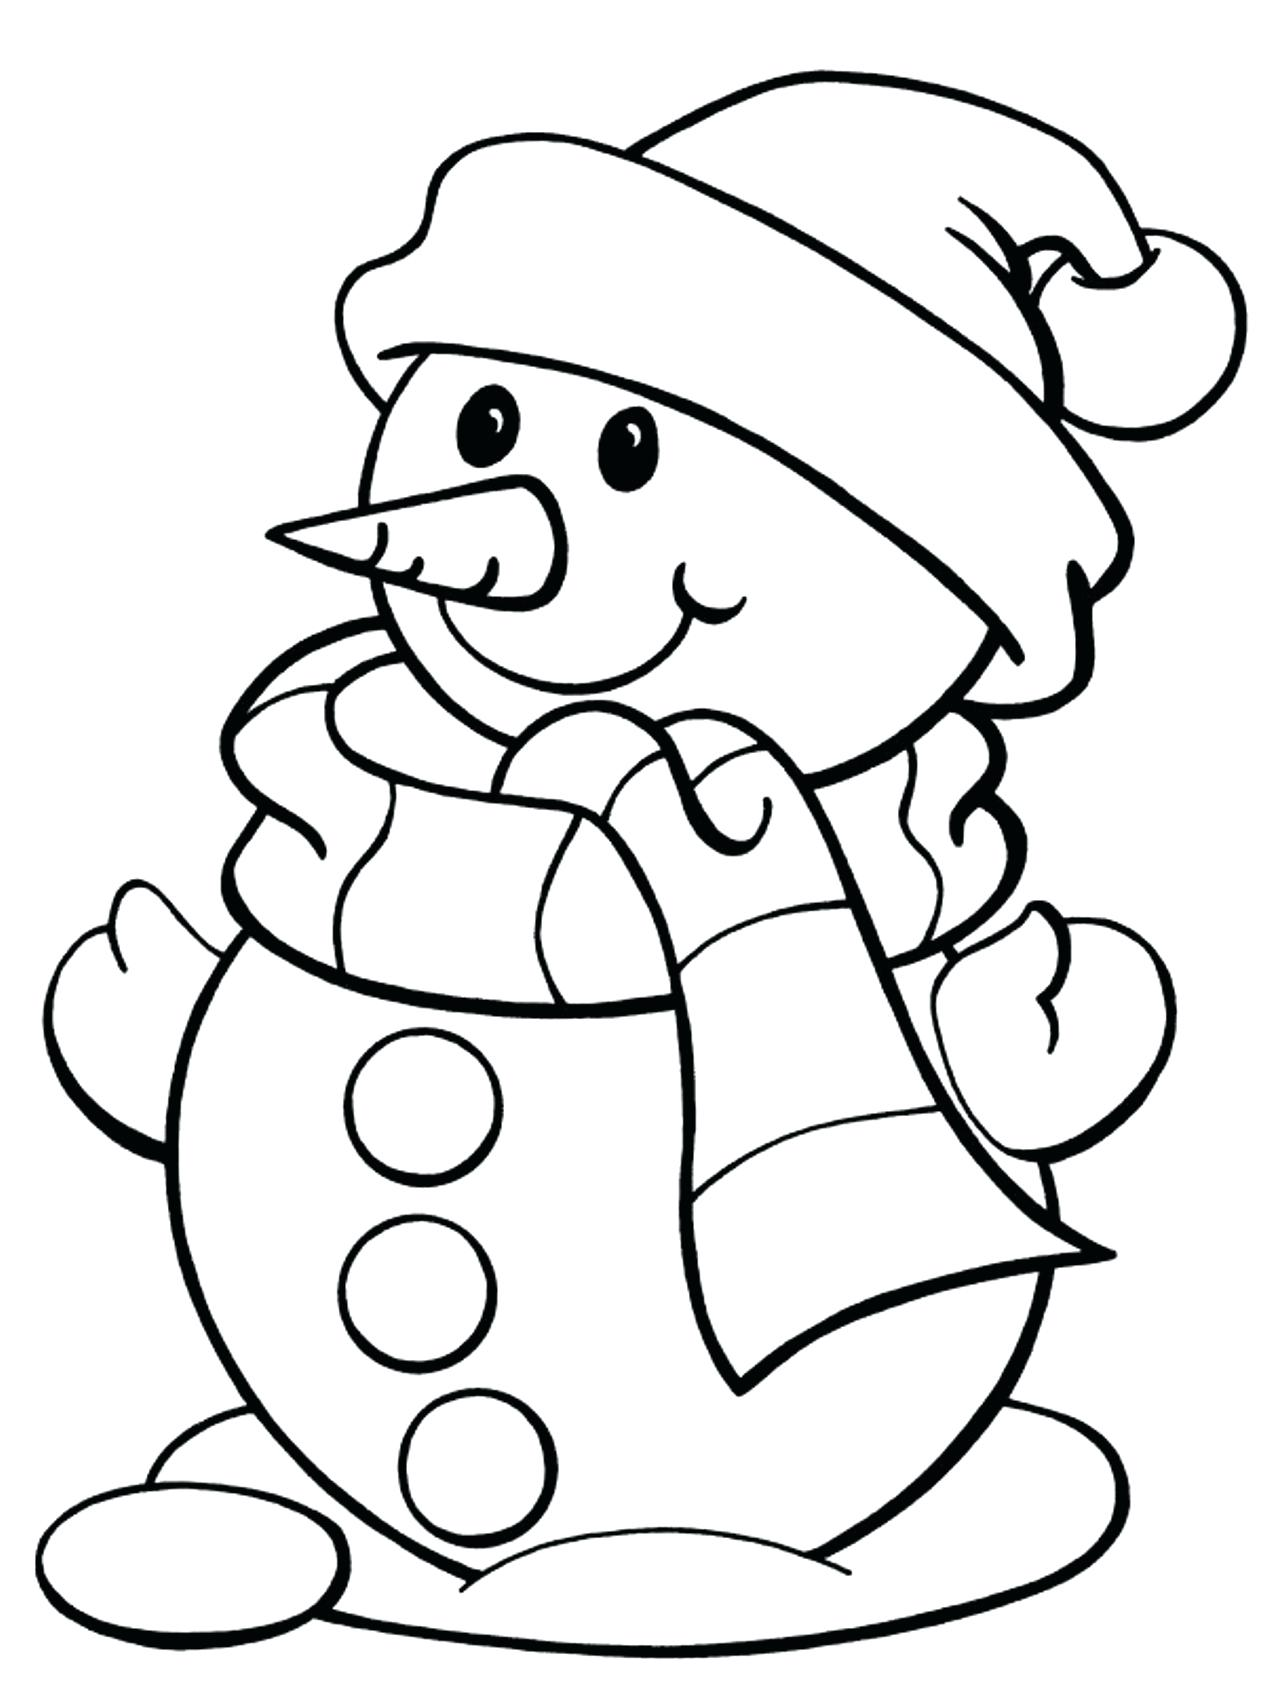 1268x1688 Coloring Pages Amusing January Coloring Page 16 Pages January